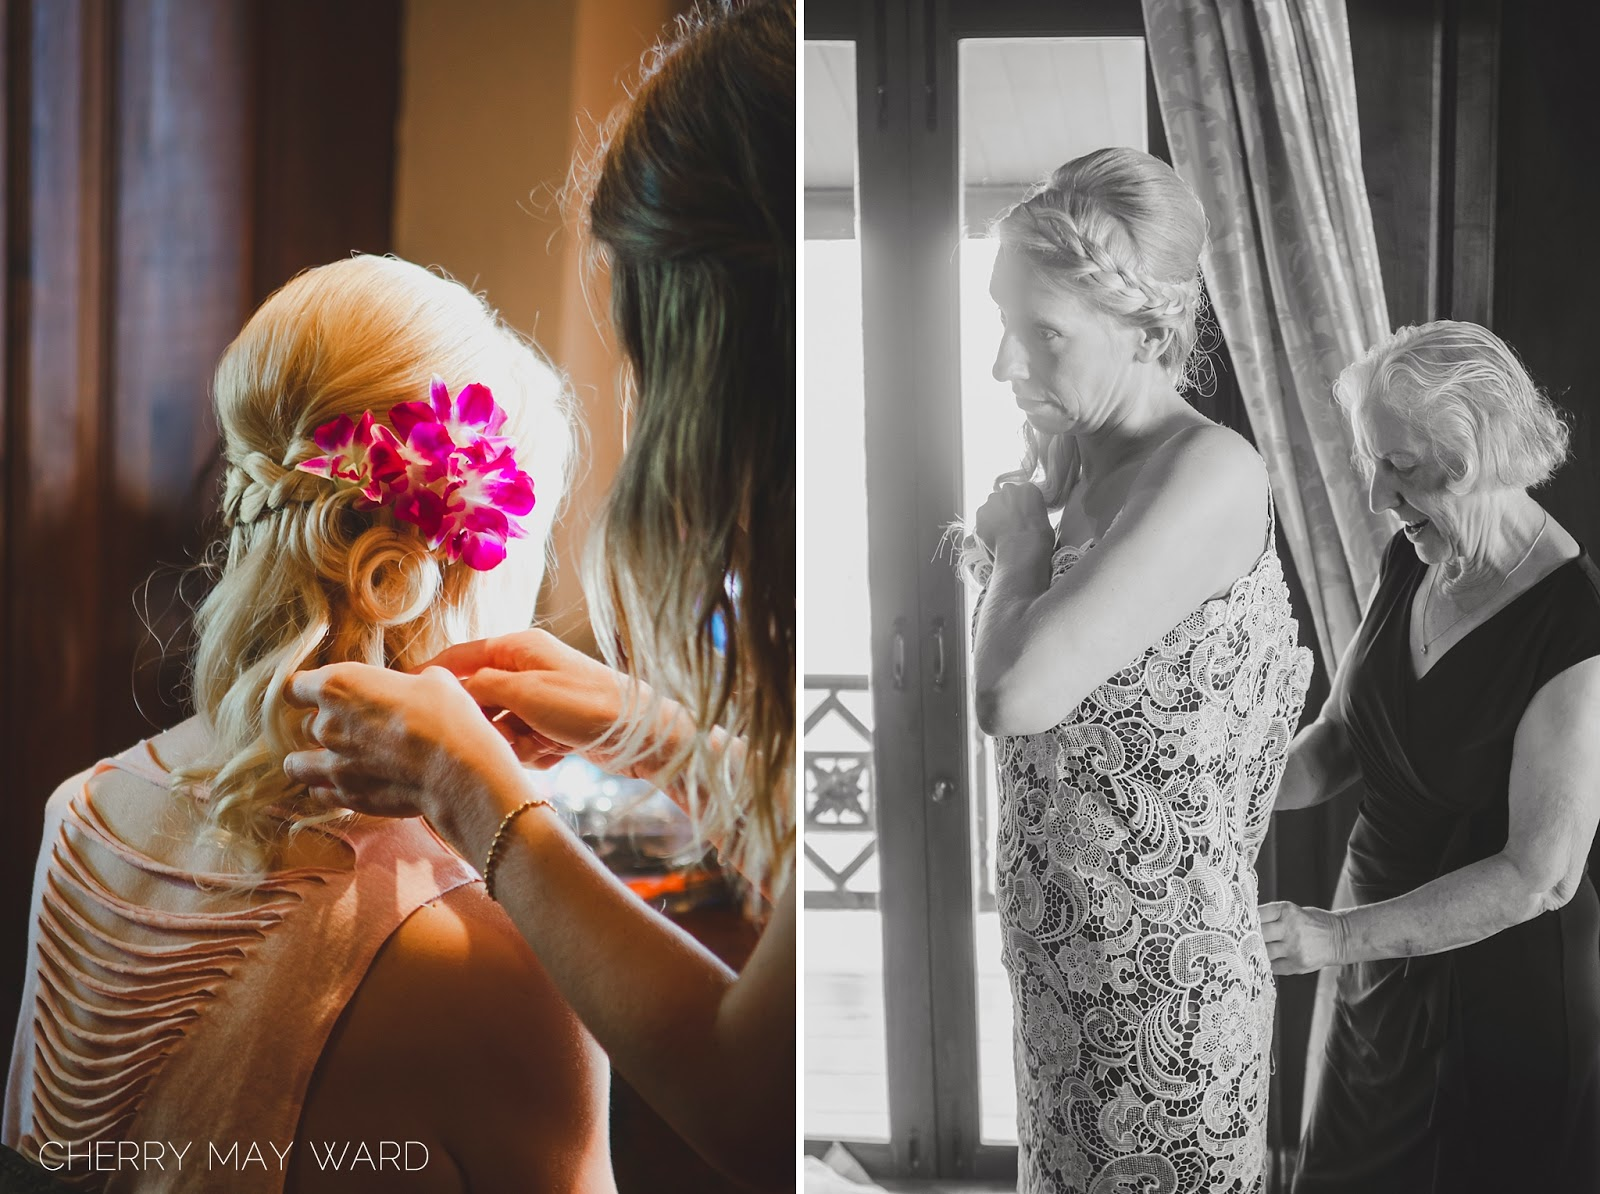 bride's hair and makeup Koh Samui, Koh Samui hair stylist, freelance wedding hair stylist, Thailand villa wedding, Koh Samui villa wedding vendors, bride getting ready, bride getting into dress